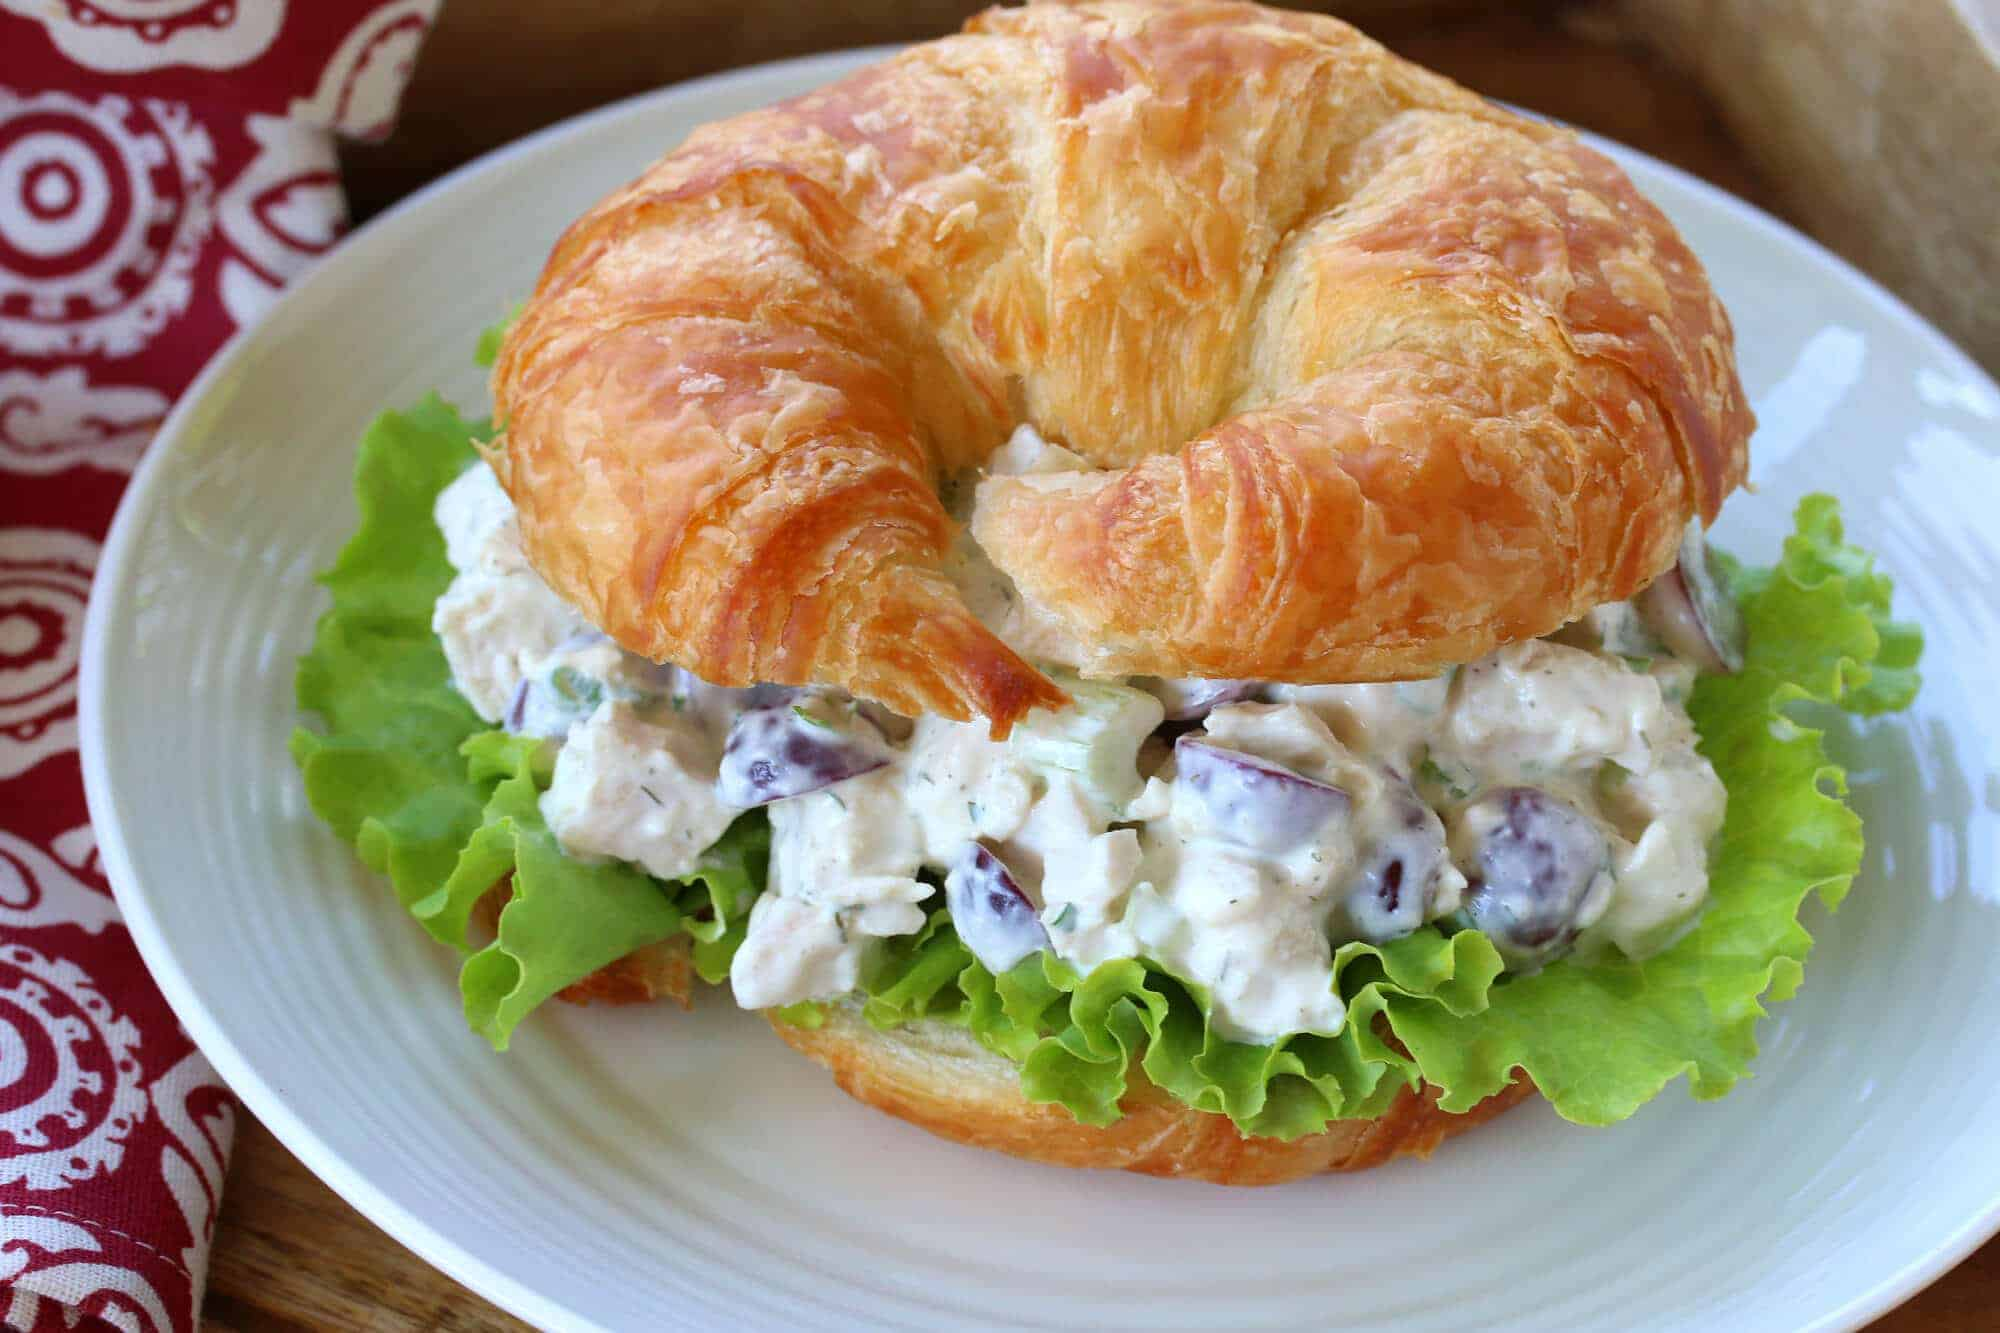 chicken salad recipe sandwiches croissants deli style